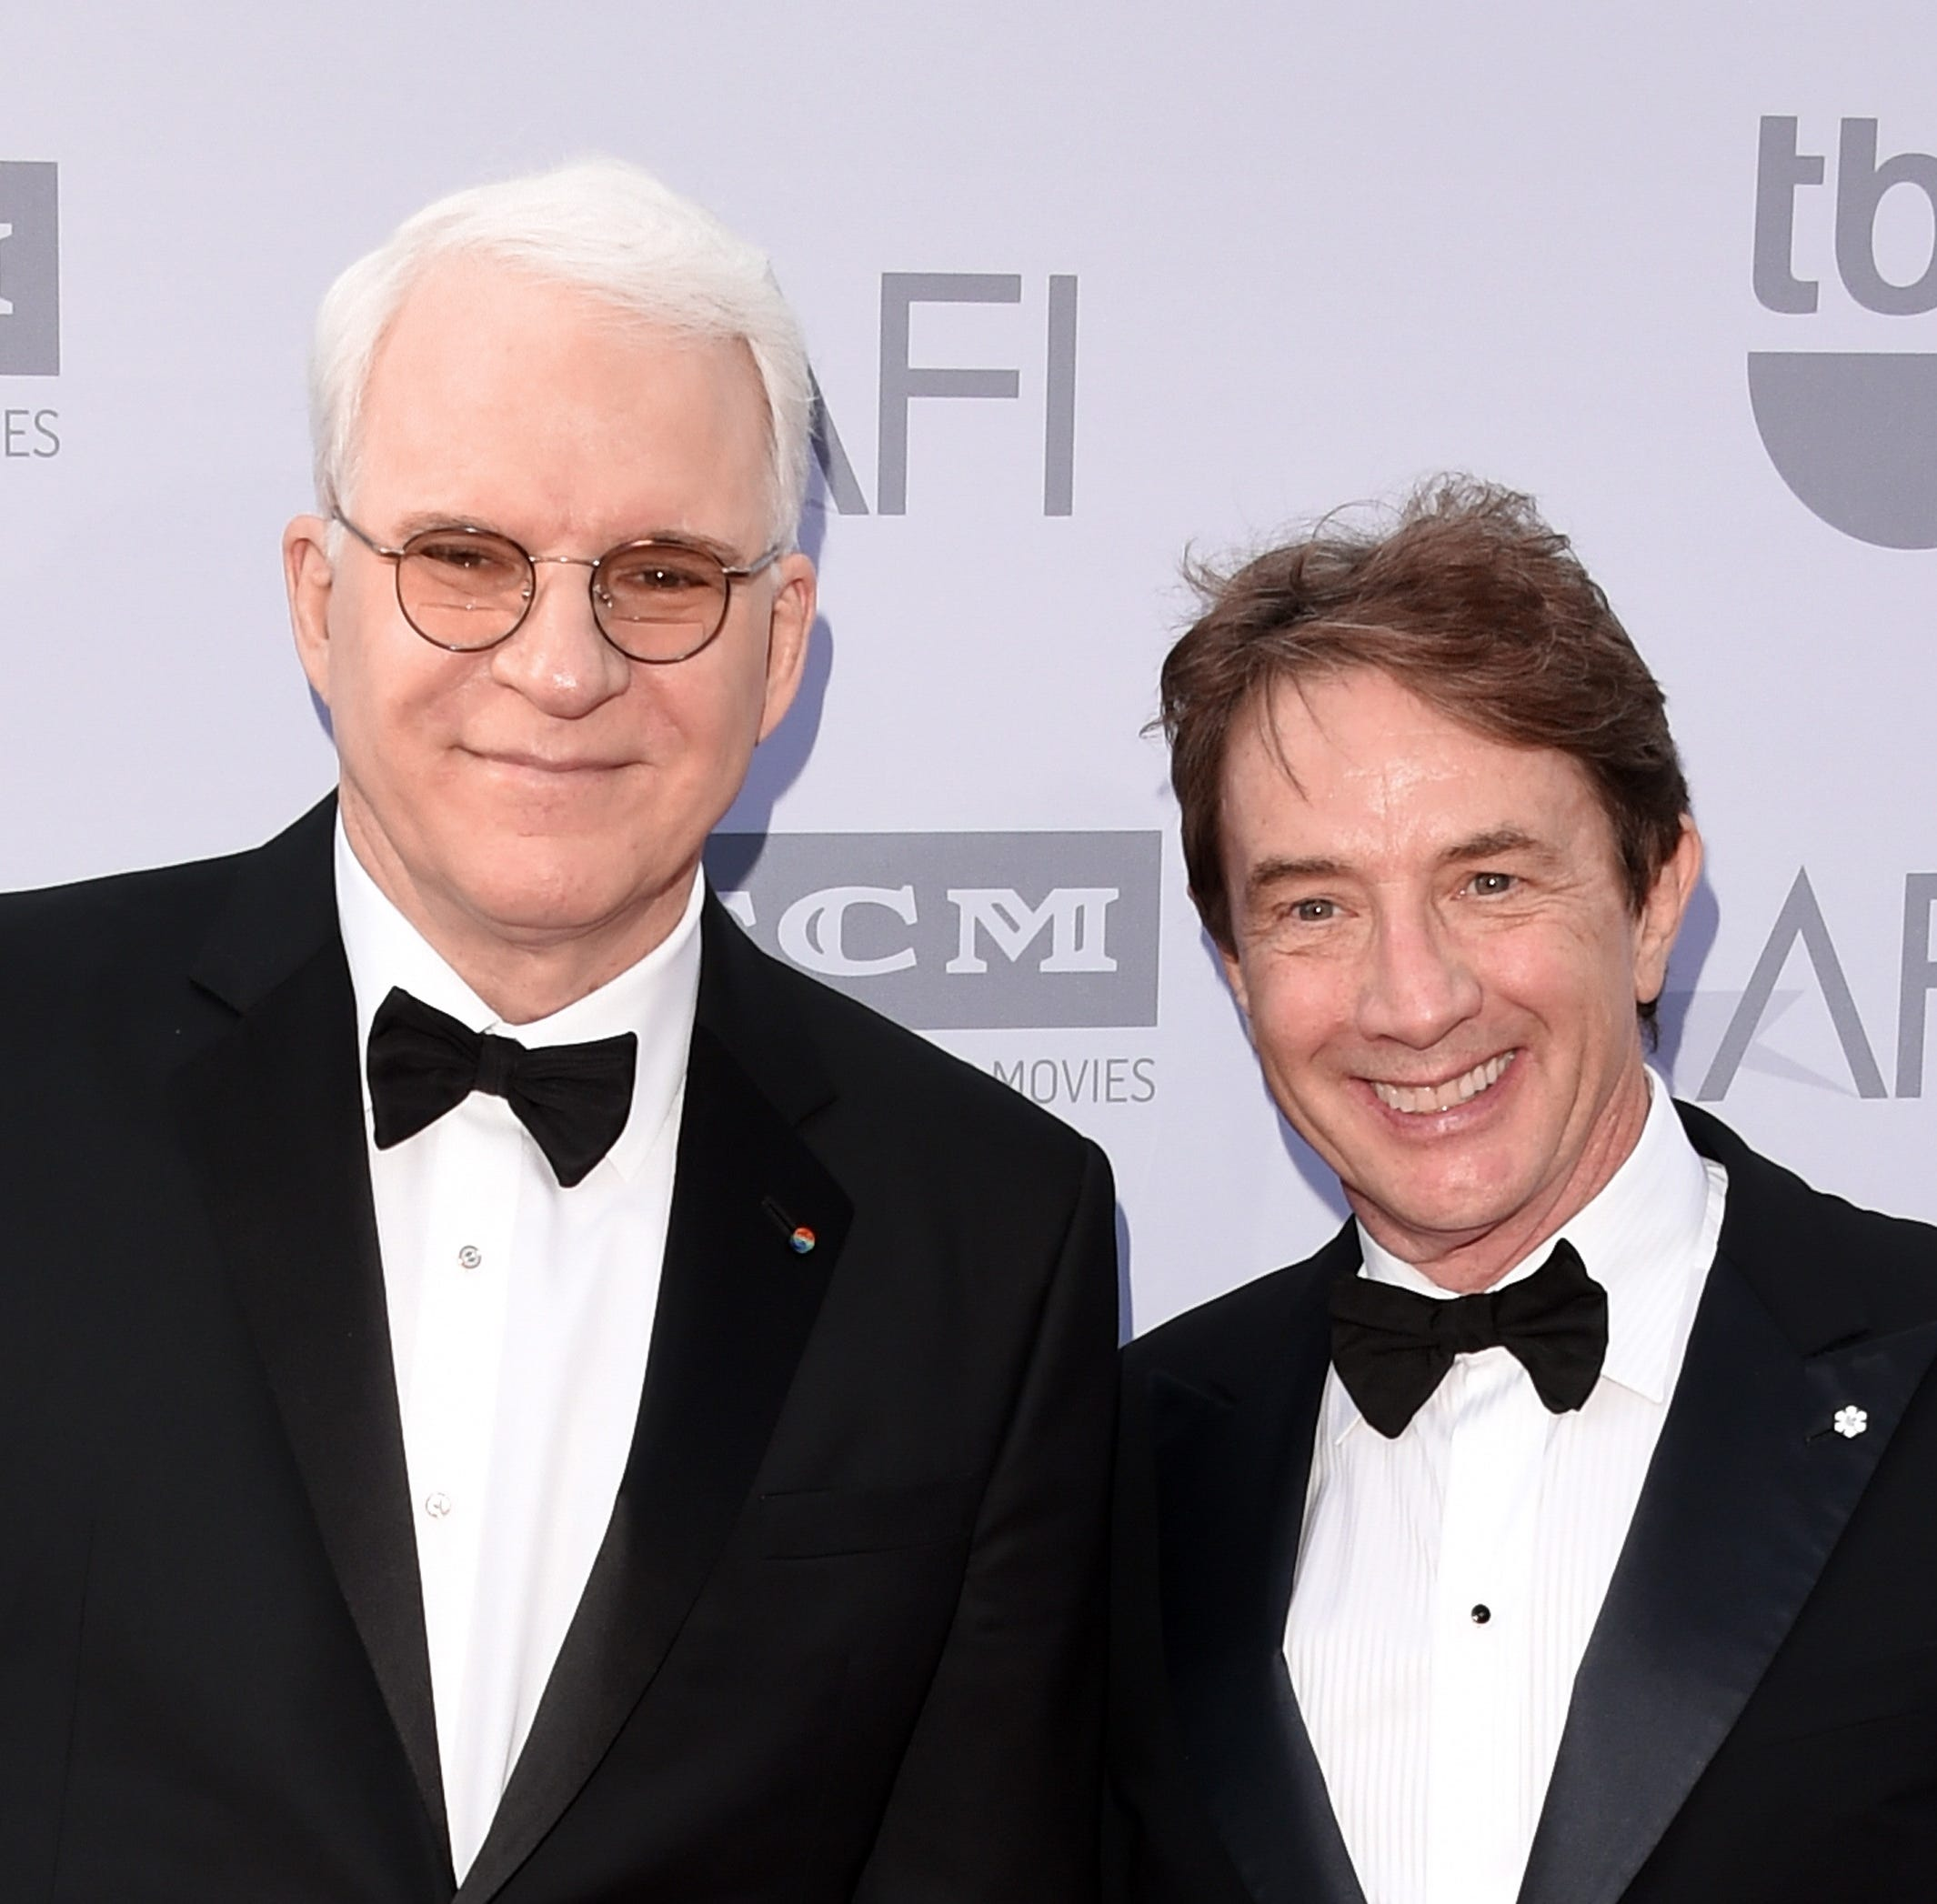 Q&A with Steve Martin and Martin Short, who will perform Sunday in Ames